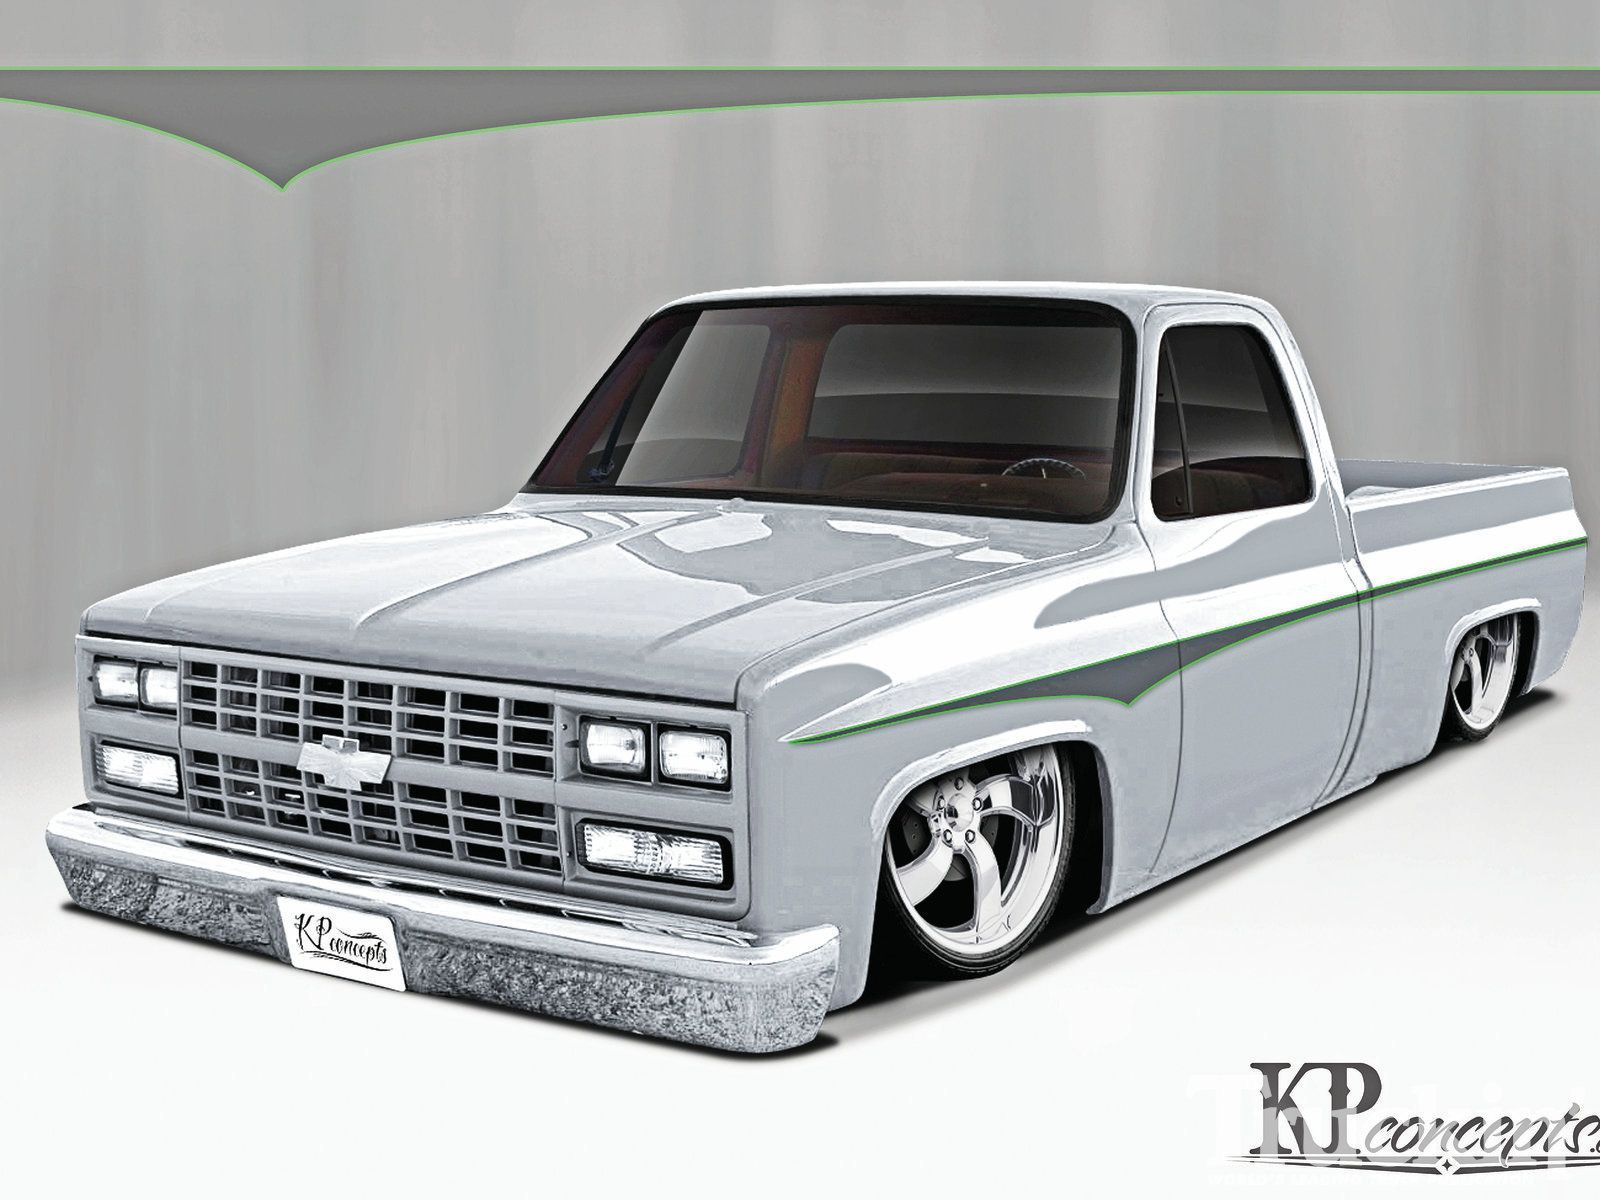 hight resolution of 1600x1200 clean cut custom chevy c10 drawing